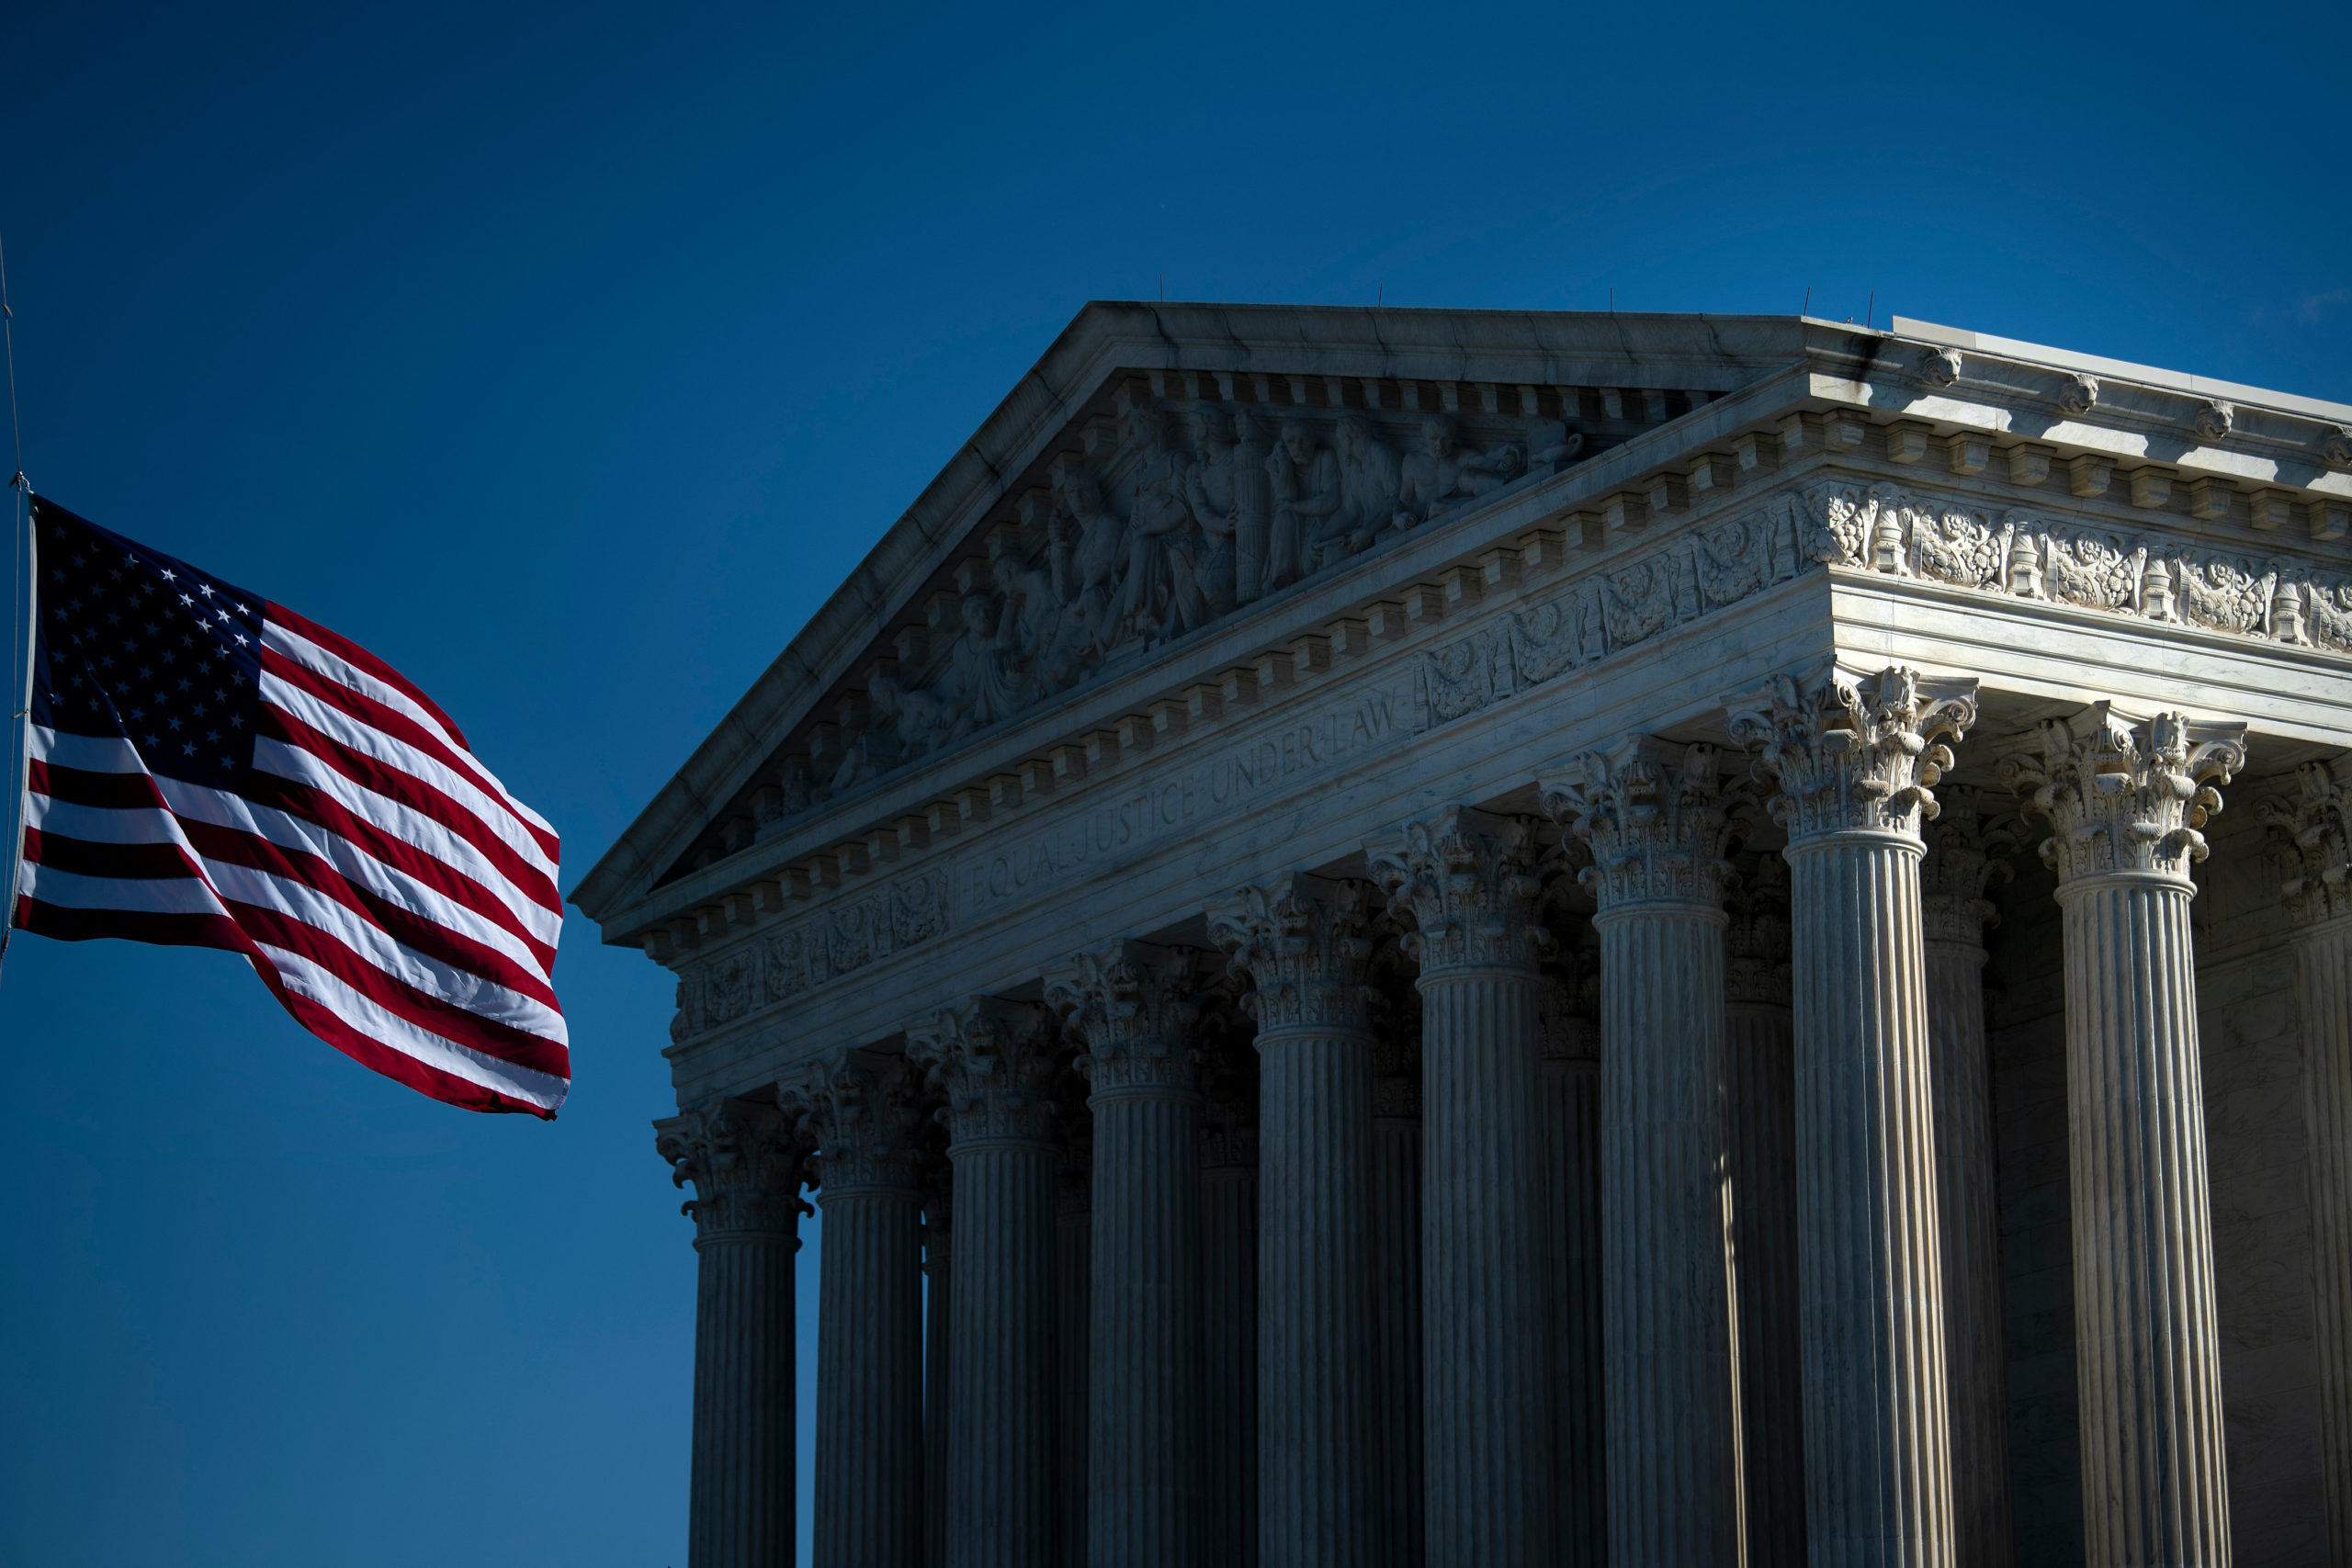 The US Supreme Court is seen on Oct. 2, 2020, in Washington, D.C.